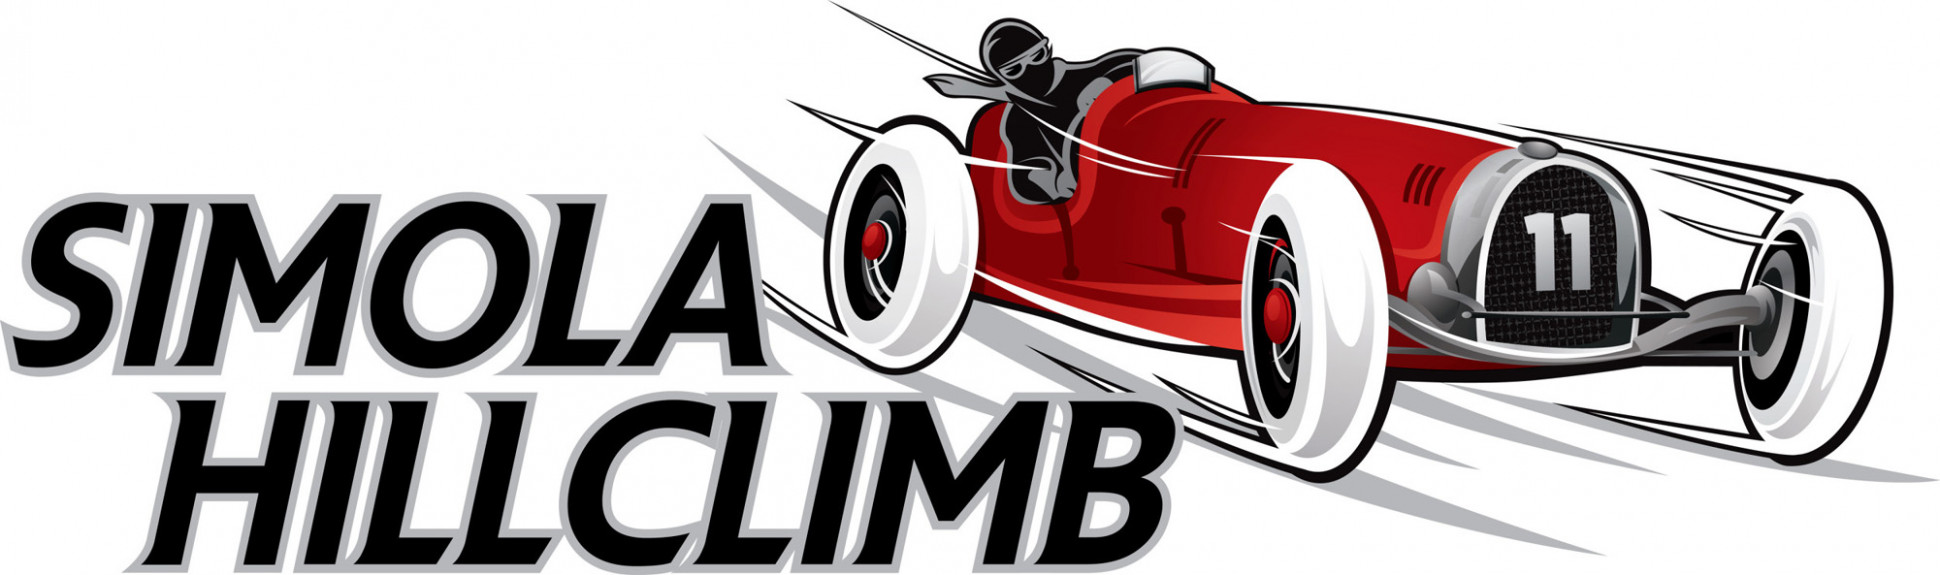 Simola Hillclimb moves to generic titling and opens up to other ...